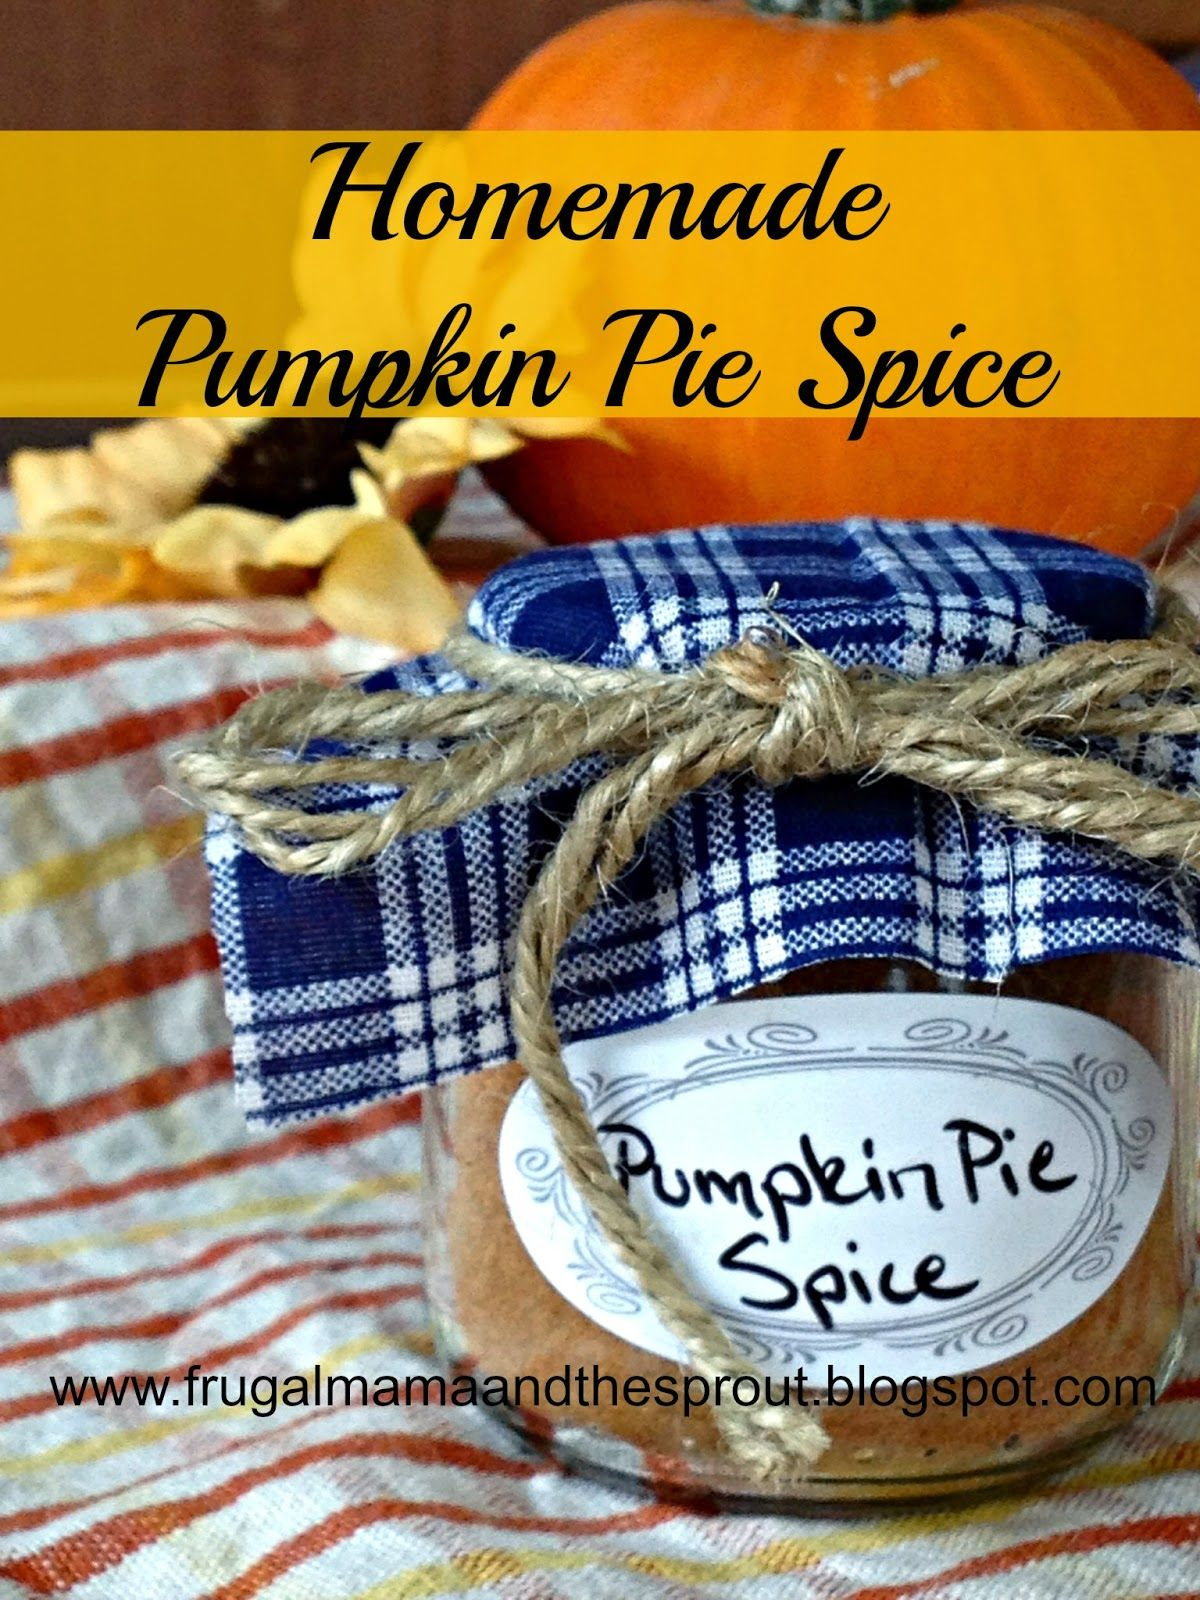 Frugal Mama & The Sprout: Homemade Pumpkin Pie Spice